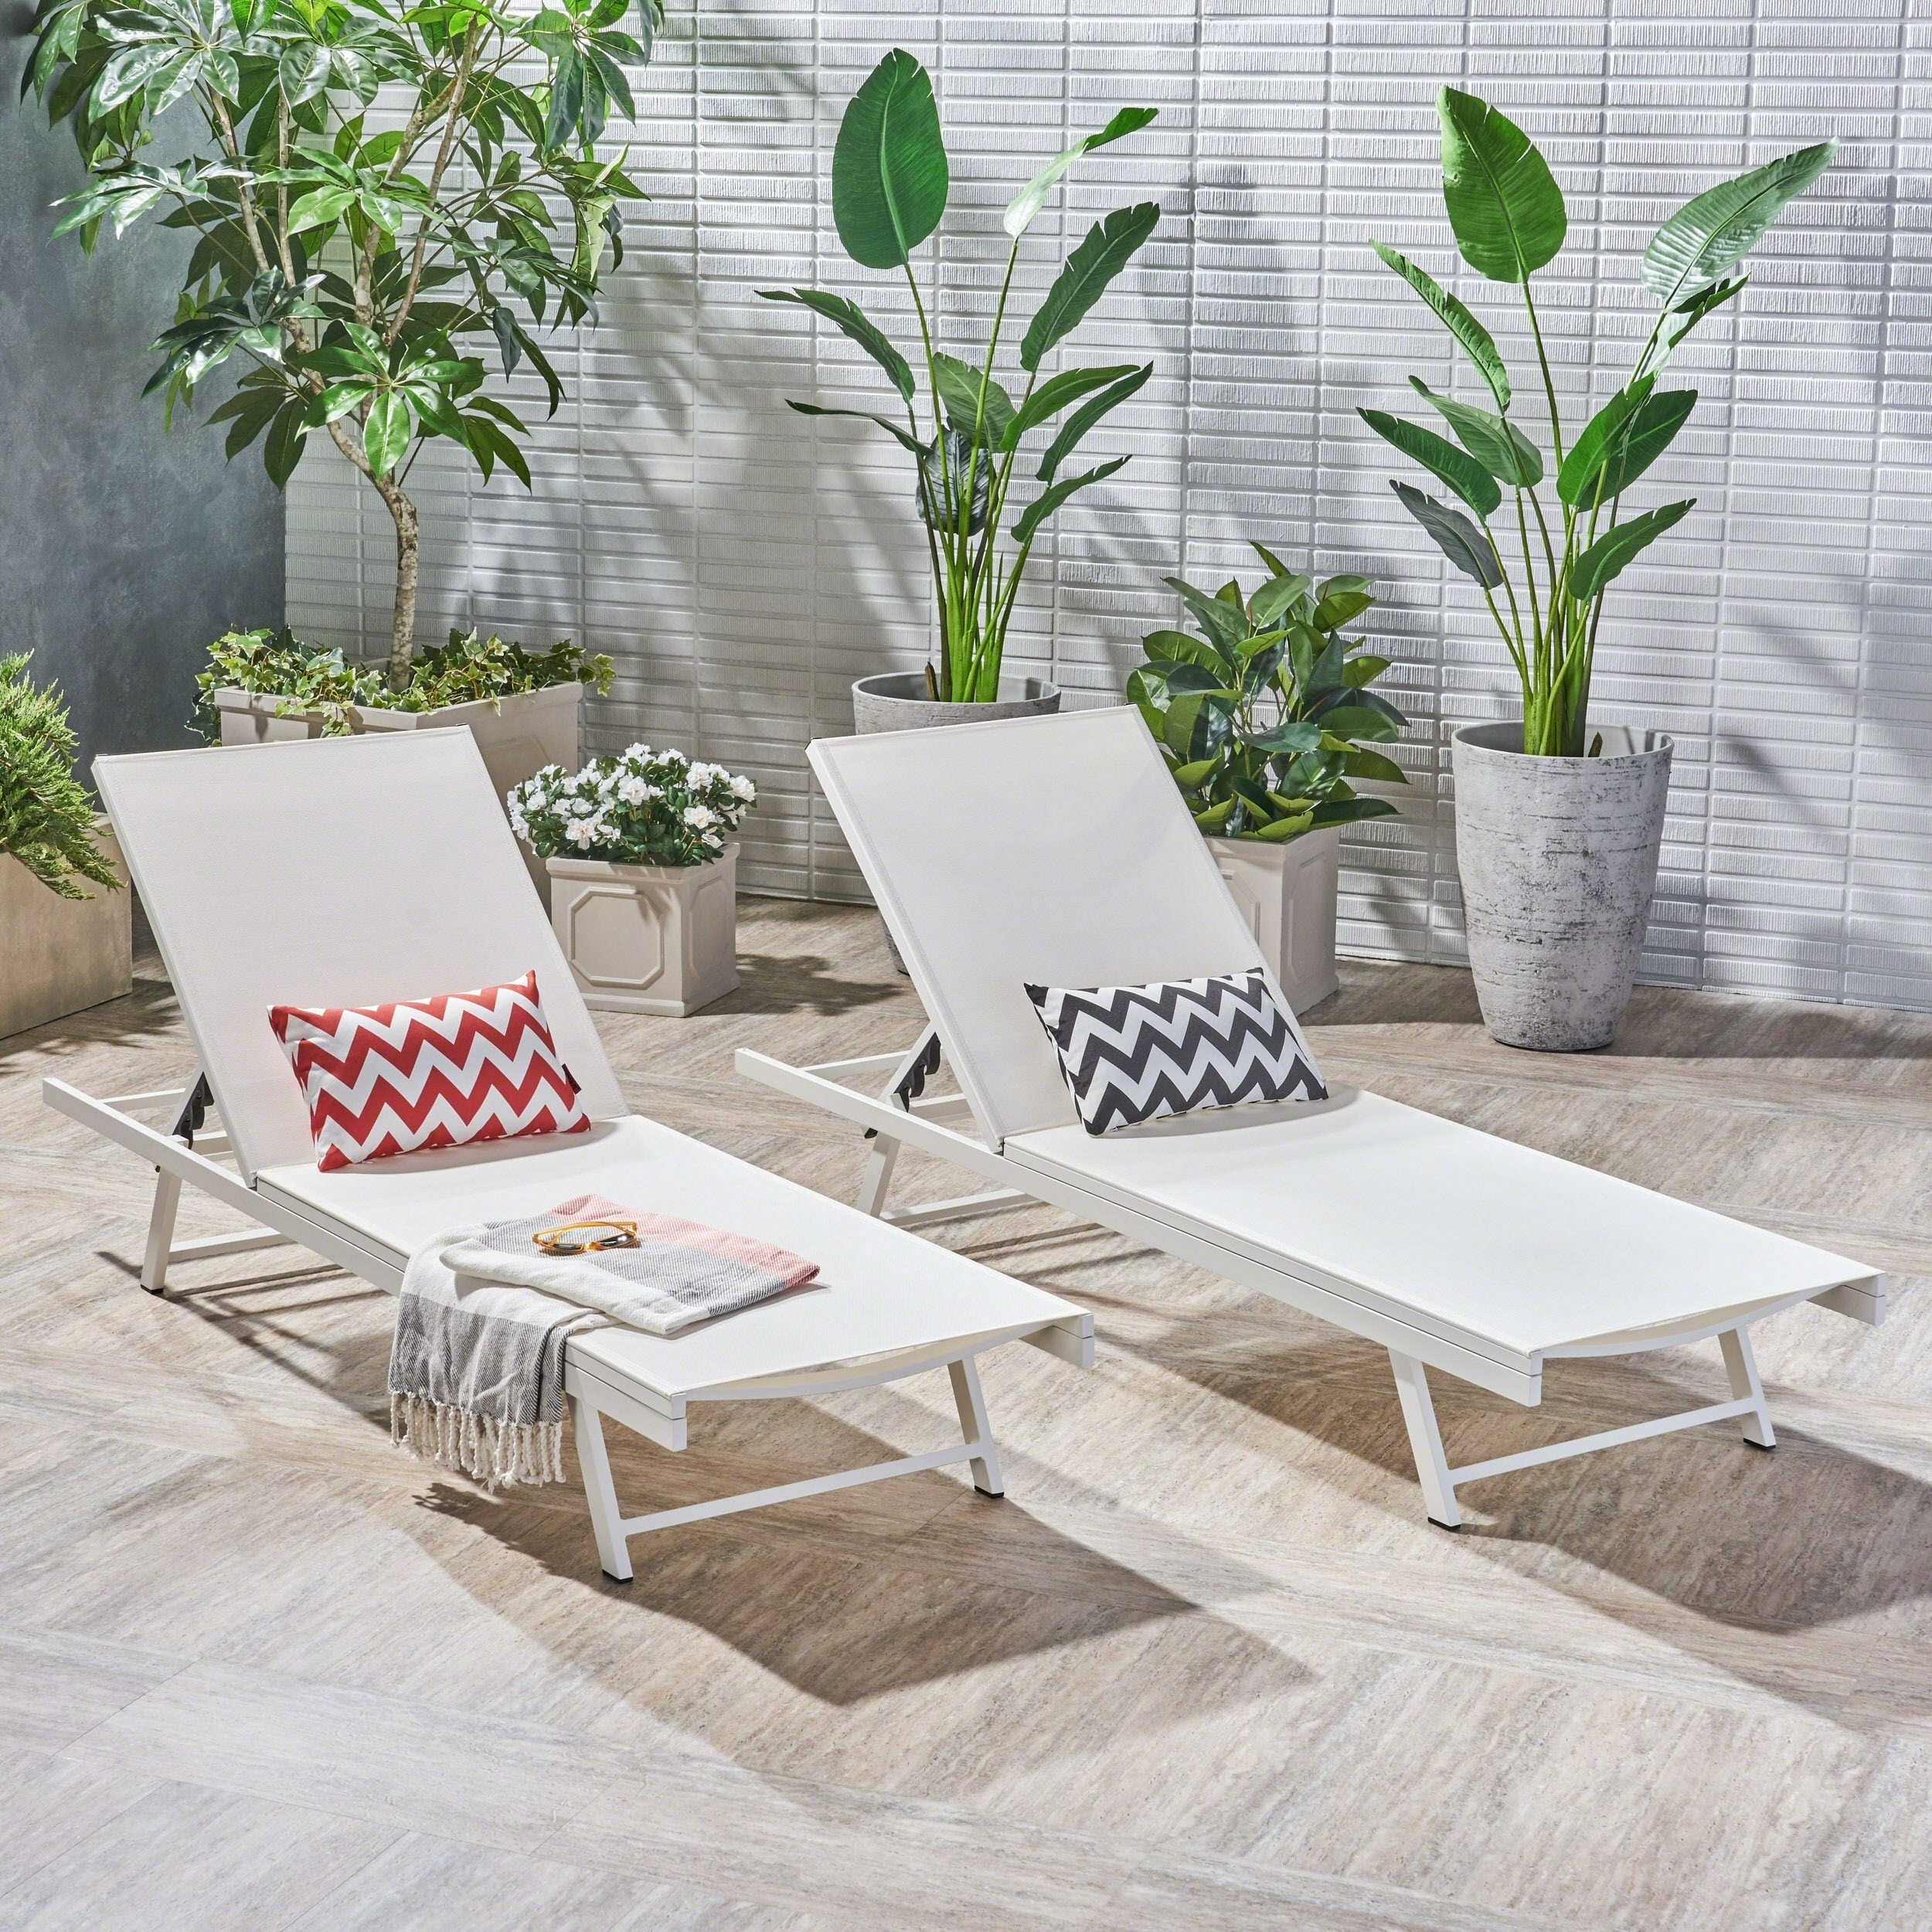 Fourth Of July Furniture Sales: 4th Of July Outdoor Furniture Sale 2019